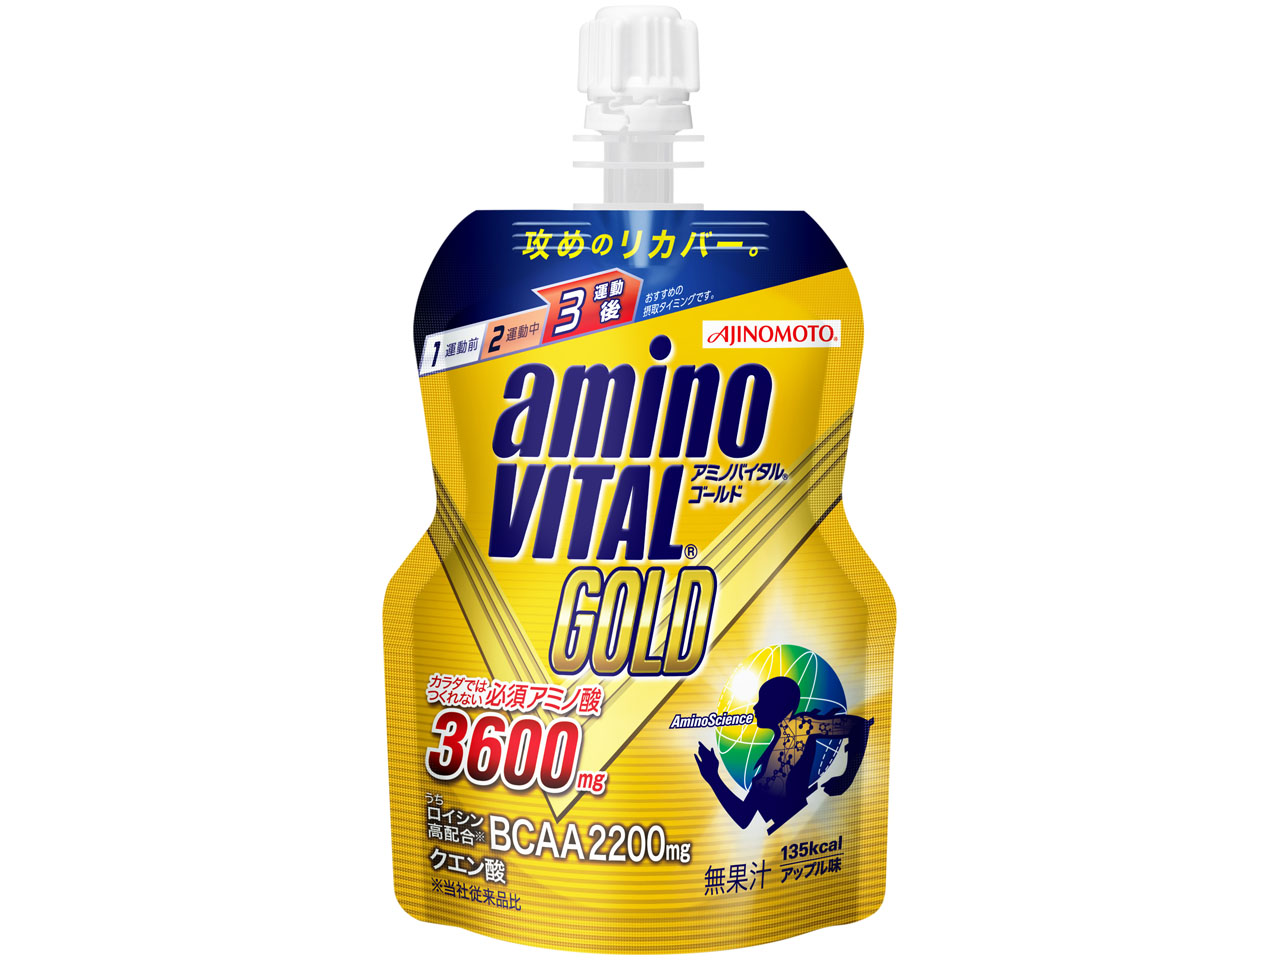 aminoVITAL GOLD JELLY со вкусом яблока (135 г) (СРОК ГОДНОСТИ ДО 21.11.2019)